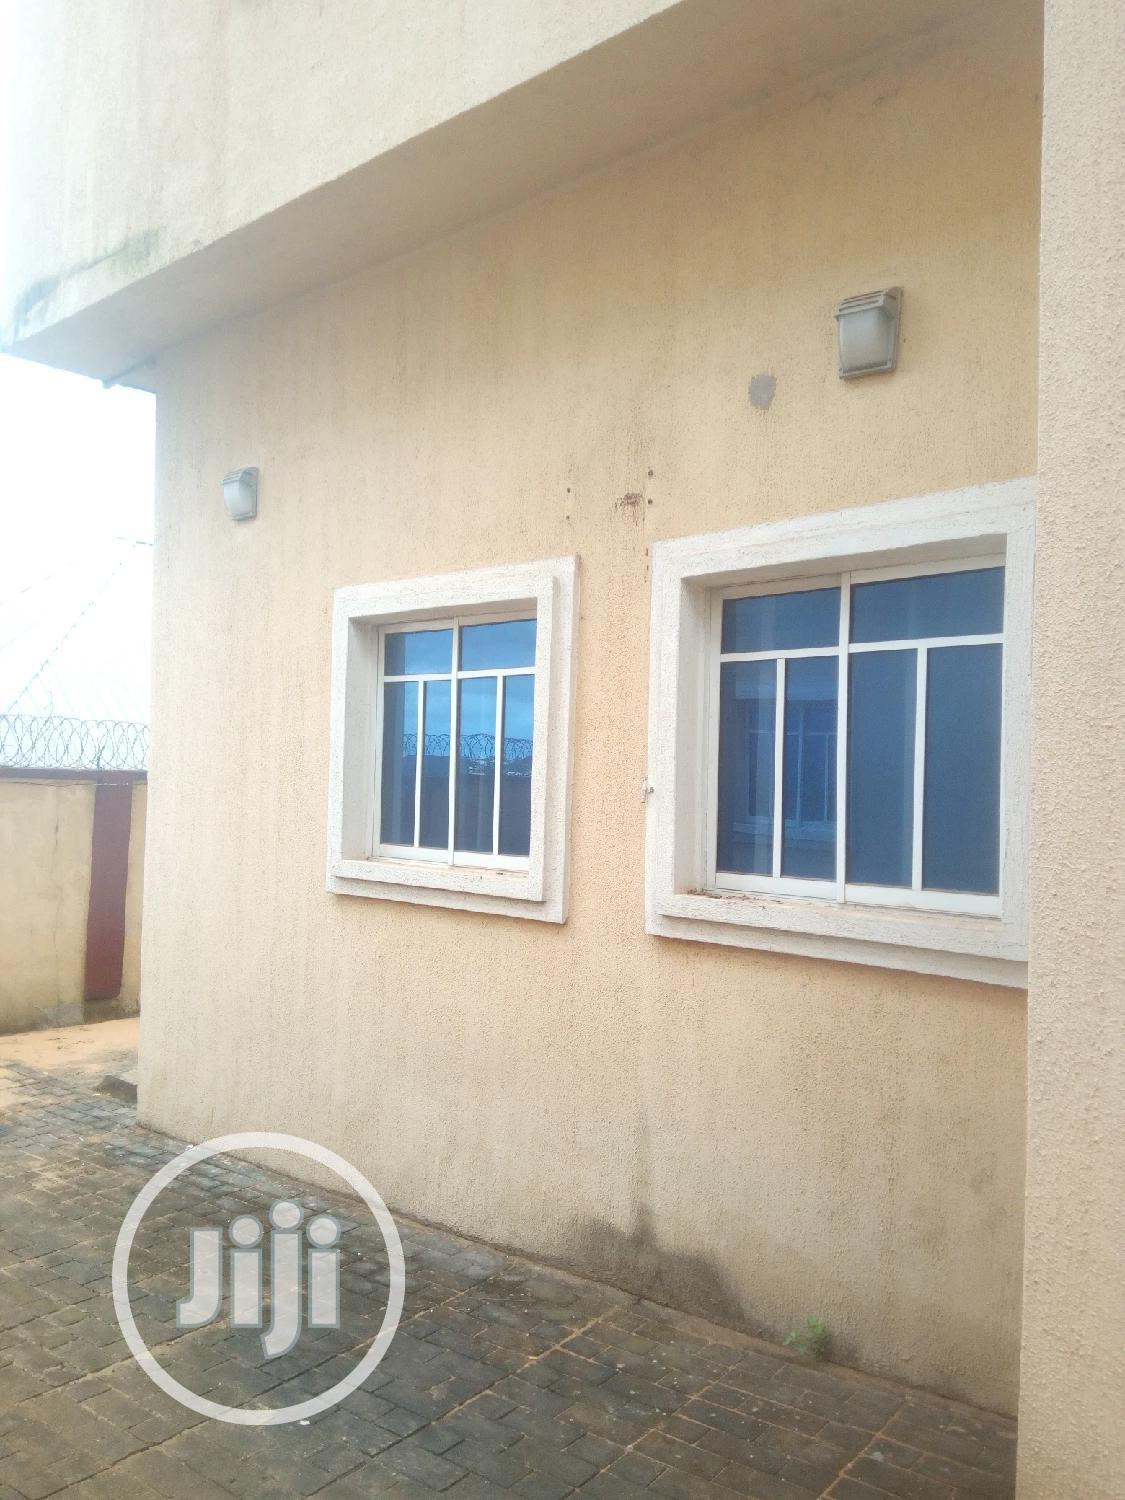 3 Bedroom Flat to Let   Houses & Apartments For Rent for sale in Onitsha, Anambra State, Nigeria